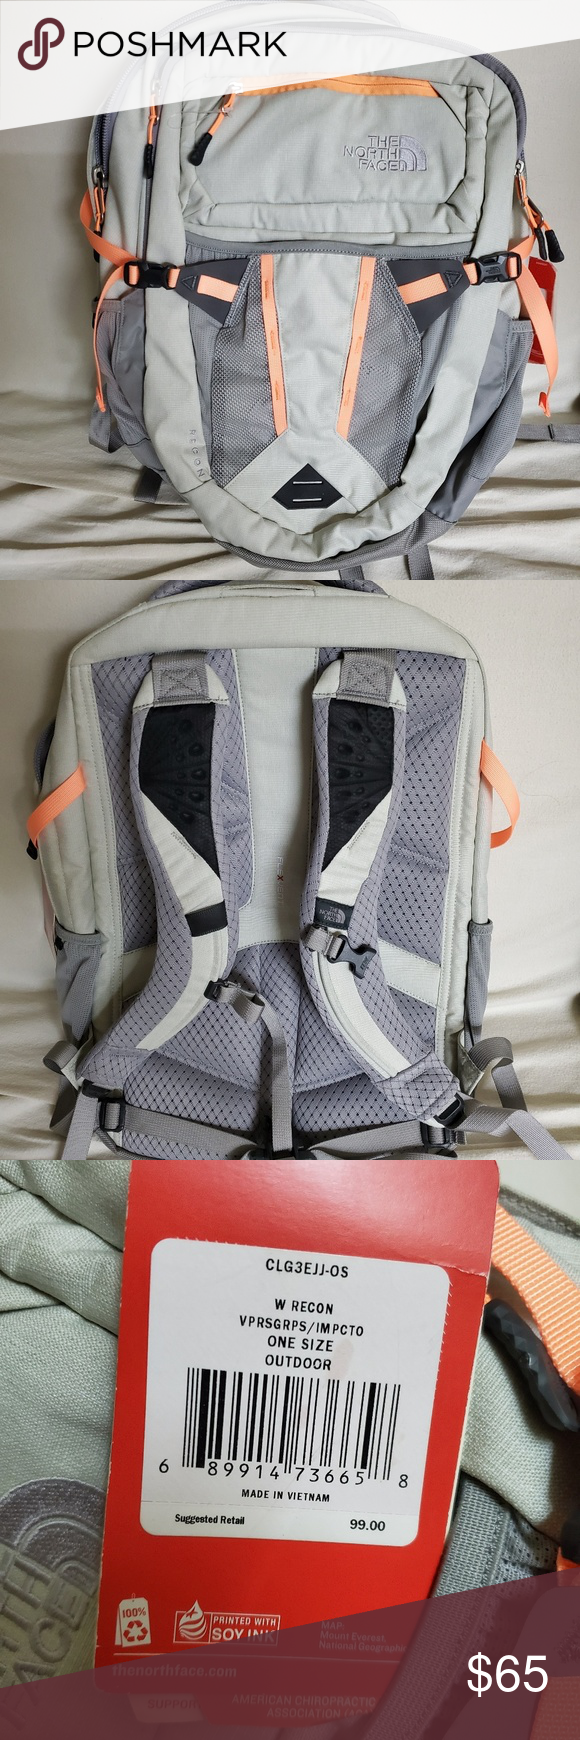 THE NORTH FACE w recon backpack -W recon backpack from THE NORTH FAVE -Sizes:One Size -Avg Weight:2 Lbs 6.1 Oz  -Dimensions:19.25 X 13 X 7  -Volume:1831 In³ (30 Liters)Laptop -Sleeve:11.5 X 17.75 -New with tag The North Face Bags Backpacks #wfaves